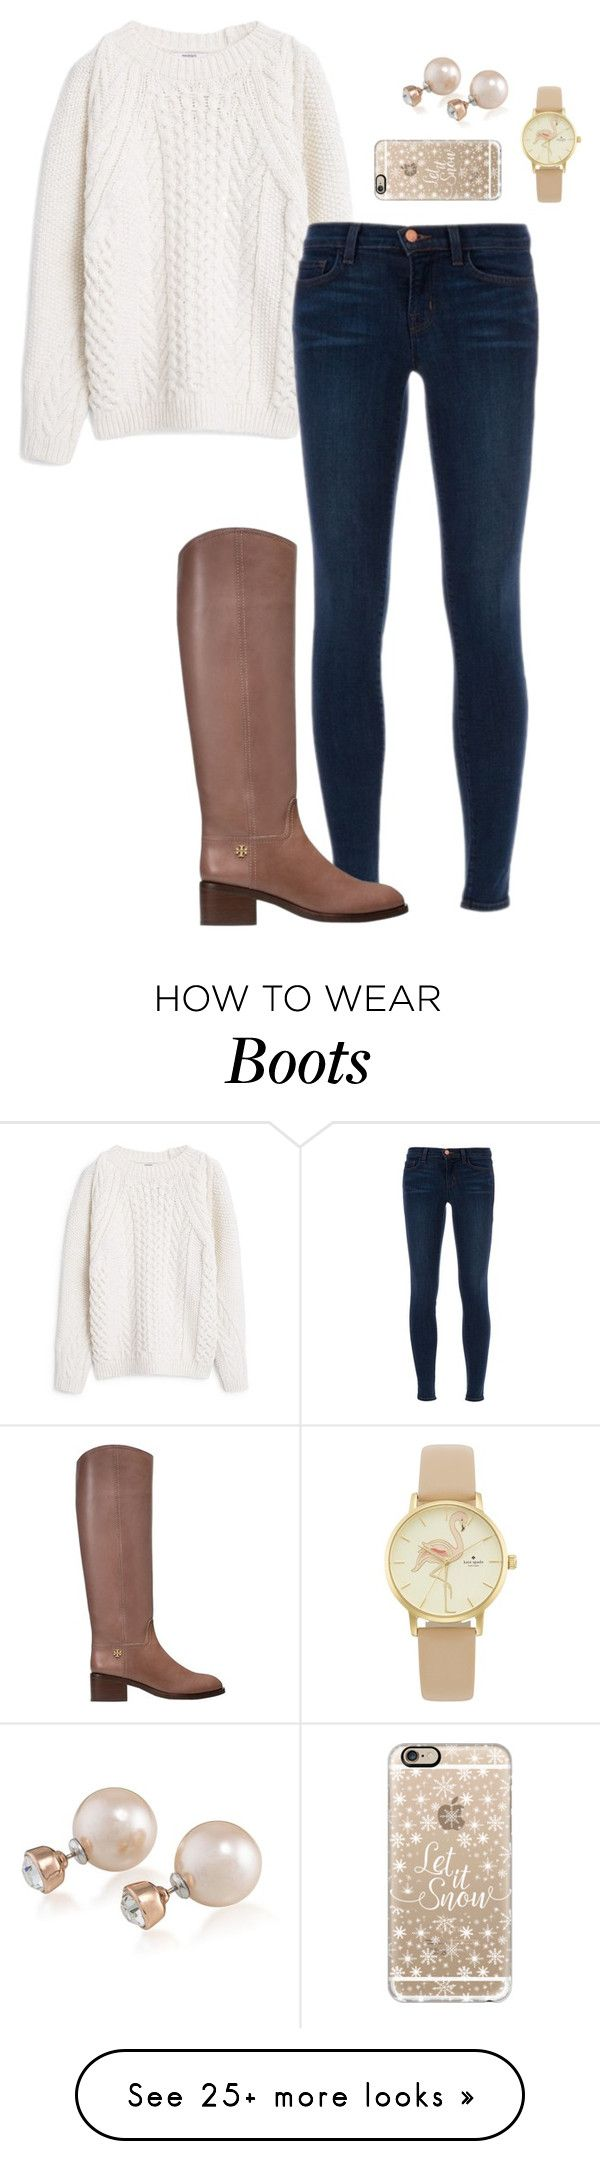 """Those boots"" by morganhaley45 on Polyvore featuring MANGO, J Brand, Tory Burch, Carolee, Kate Spade and Casetify"